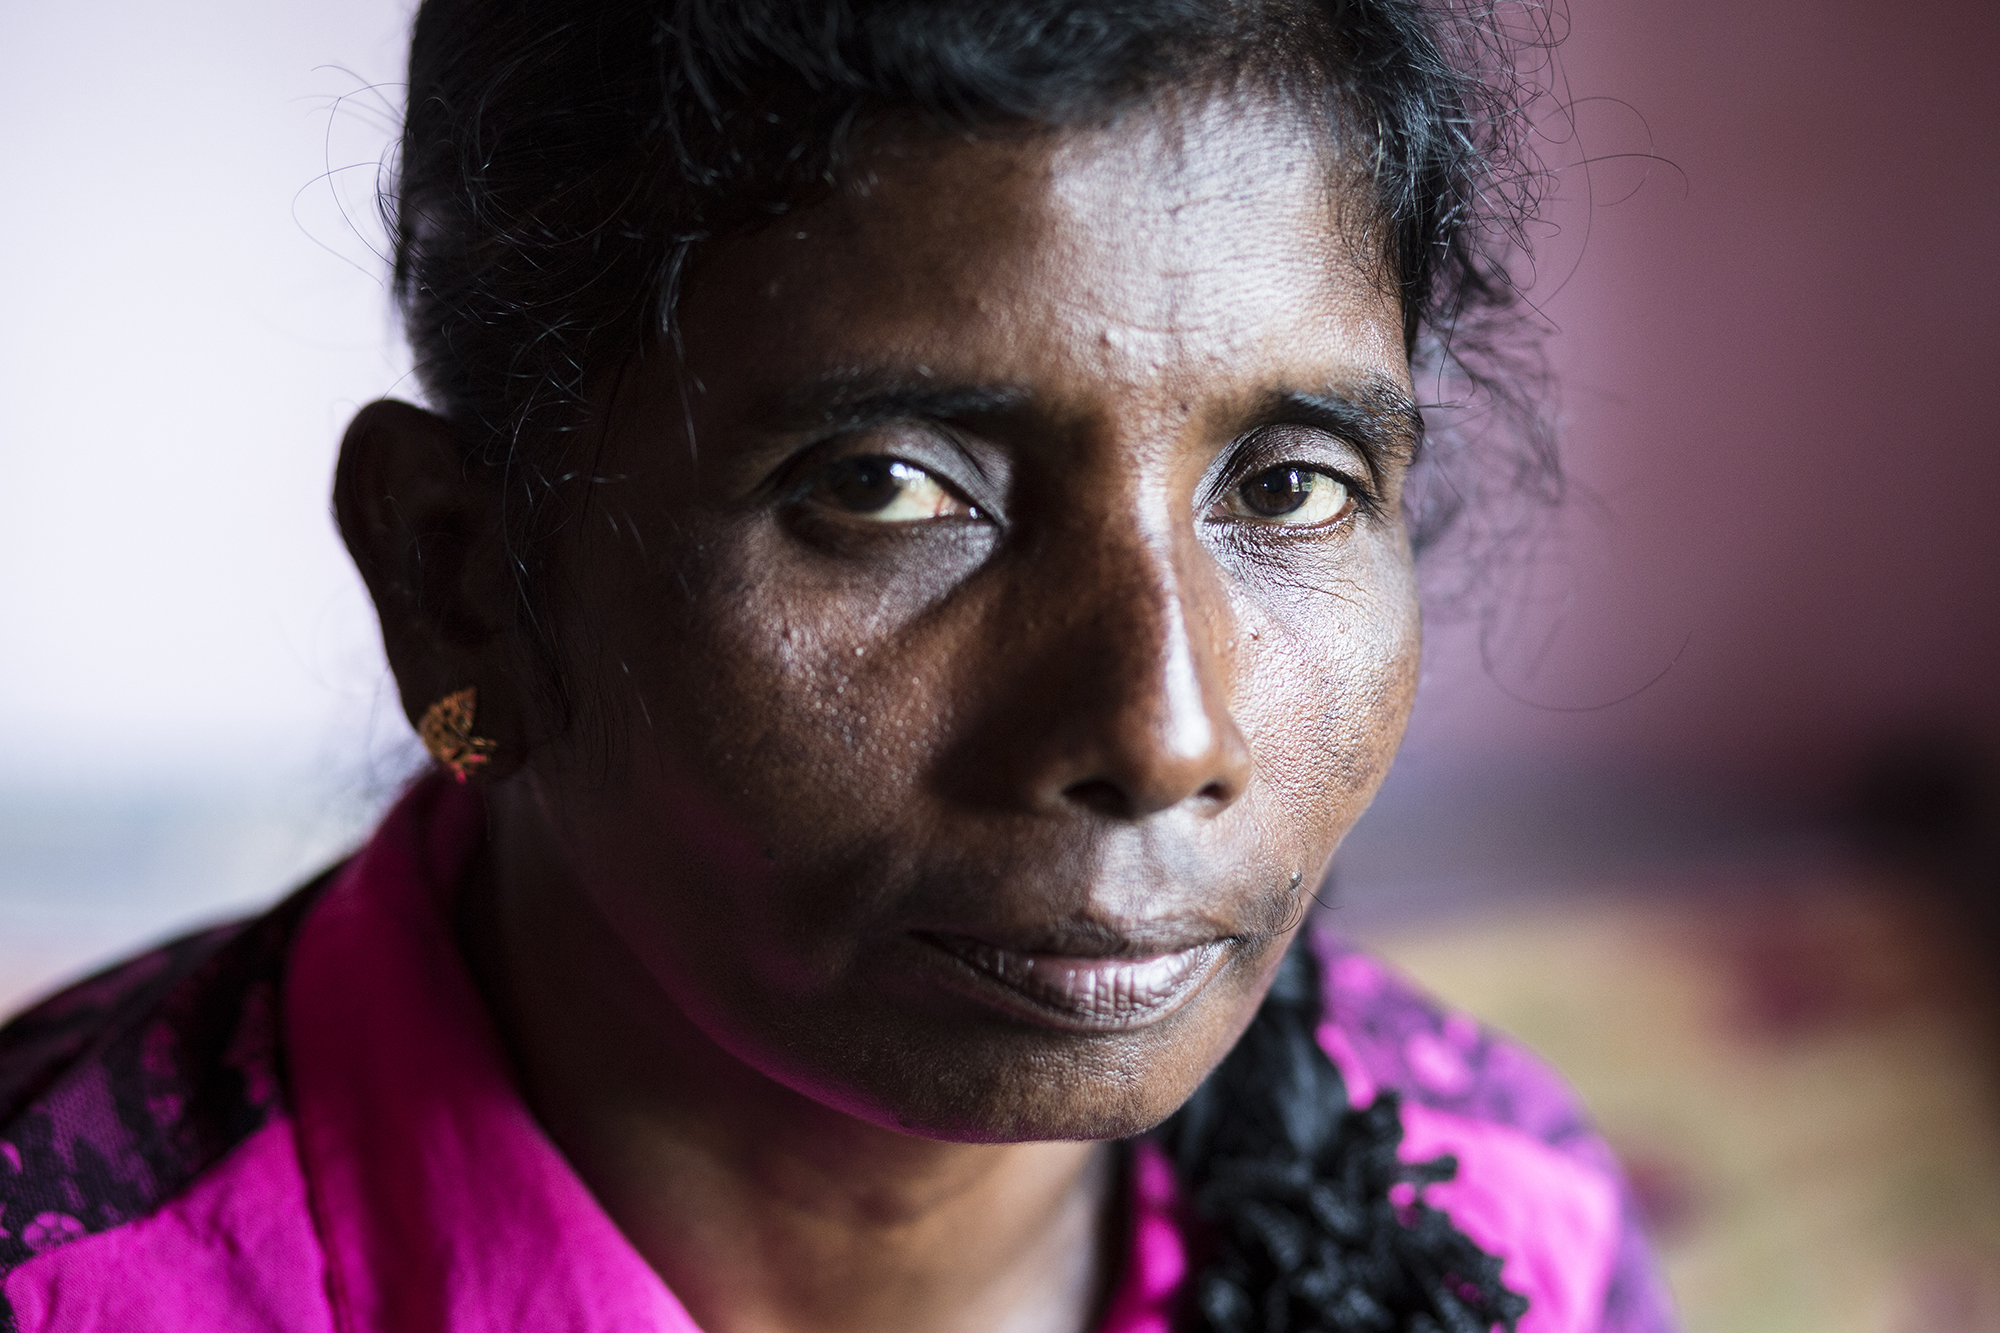 """Mary, 46. Mary has three sons, all of whom have been imprisoned or held within the LTTE army camps. She recounts her own time spent in a displacement camp after being taken by the army.  """"I remember the mango trees. We were the first ones the army captured there. The food was just thrown to people and sometimes we couldn't get anything to eat."""""""